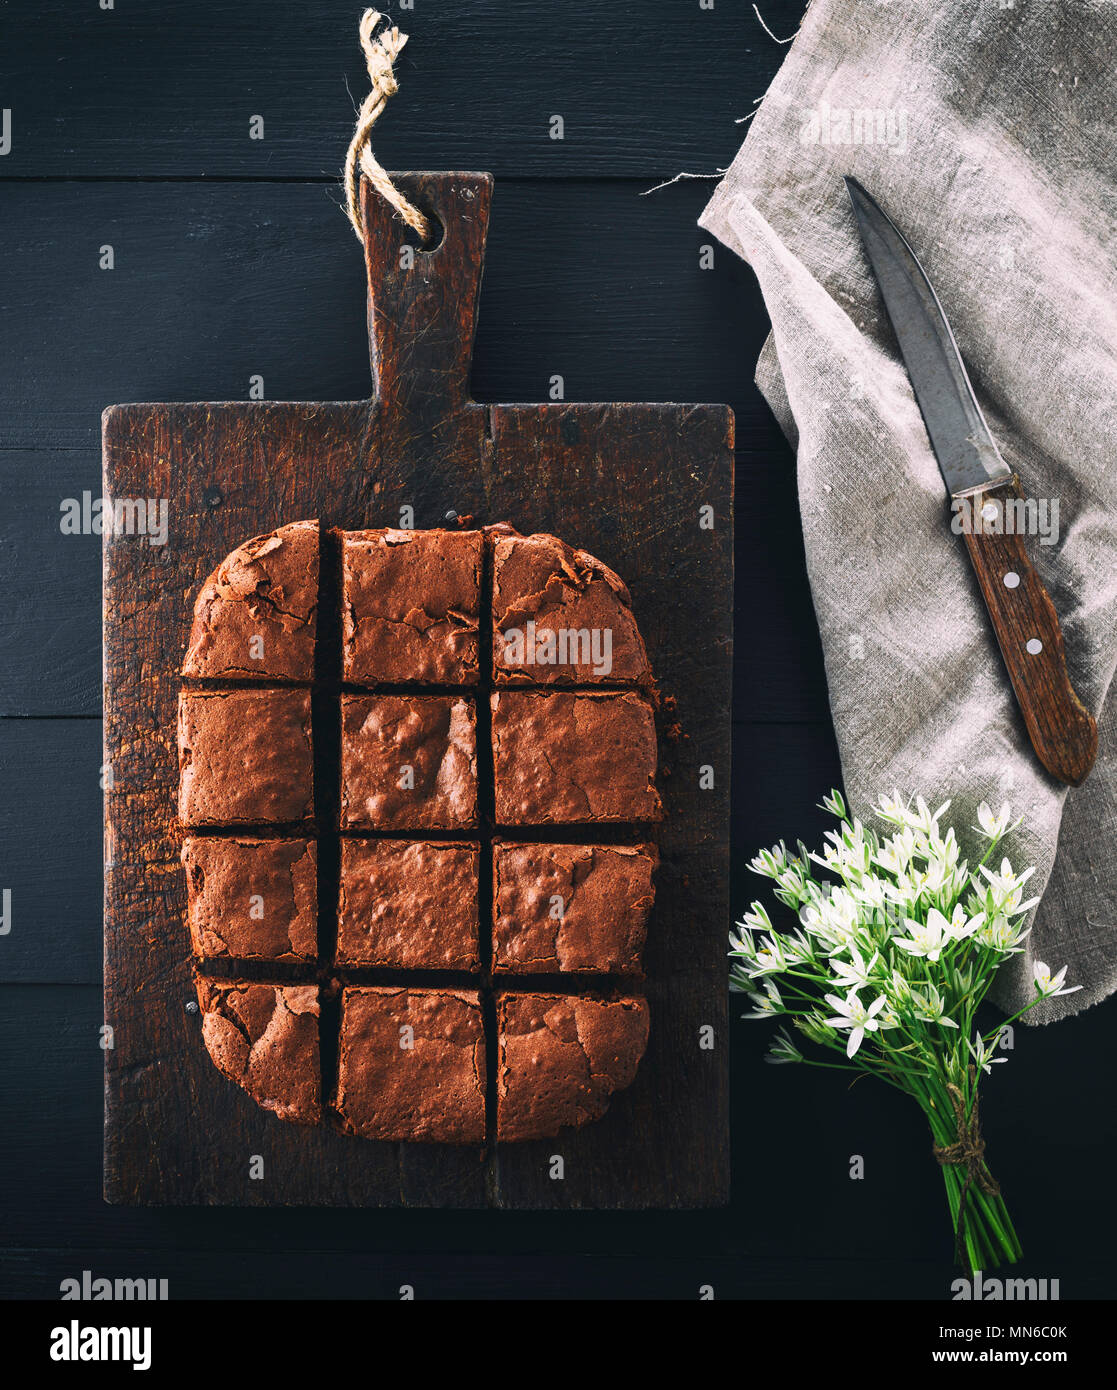 baked rectangular chocolate brownie pie is cut into squares, a wooden black table - Stock Image